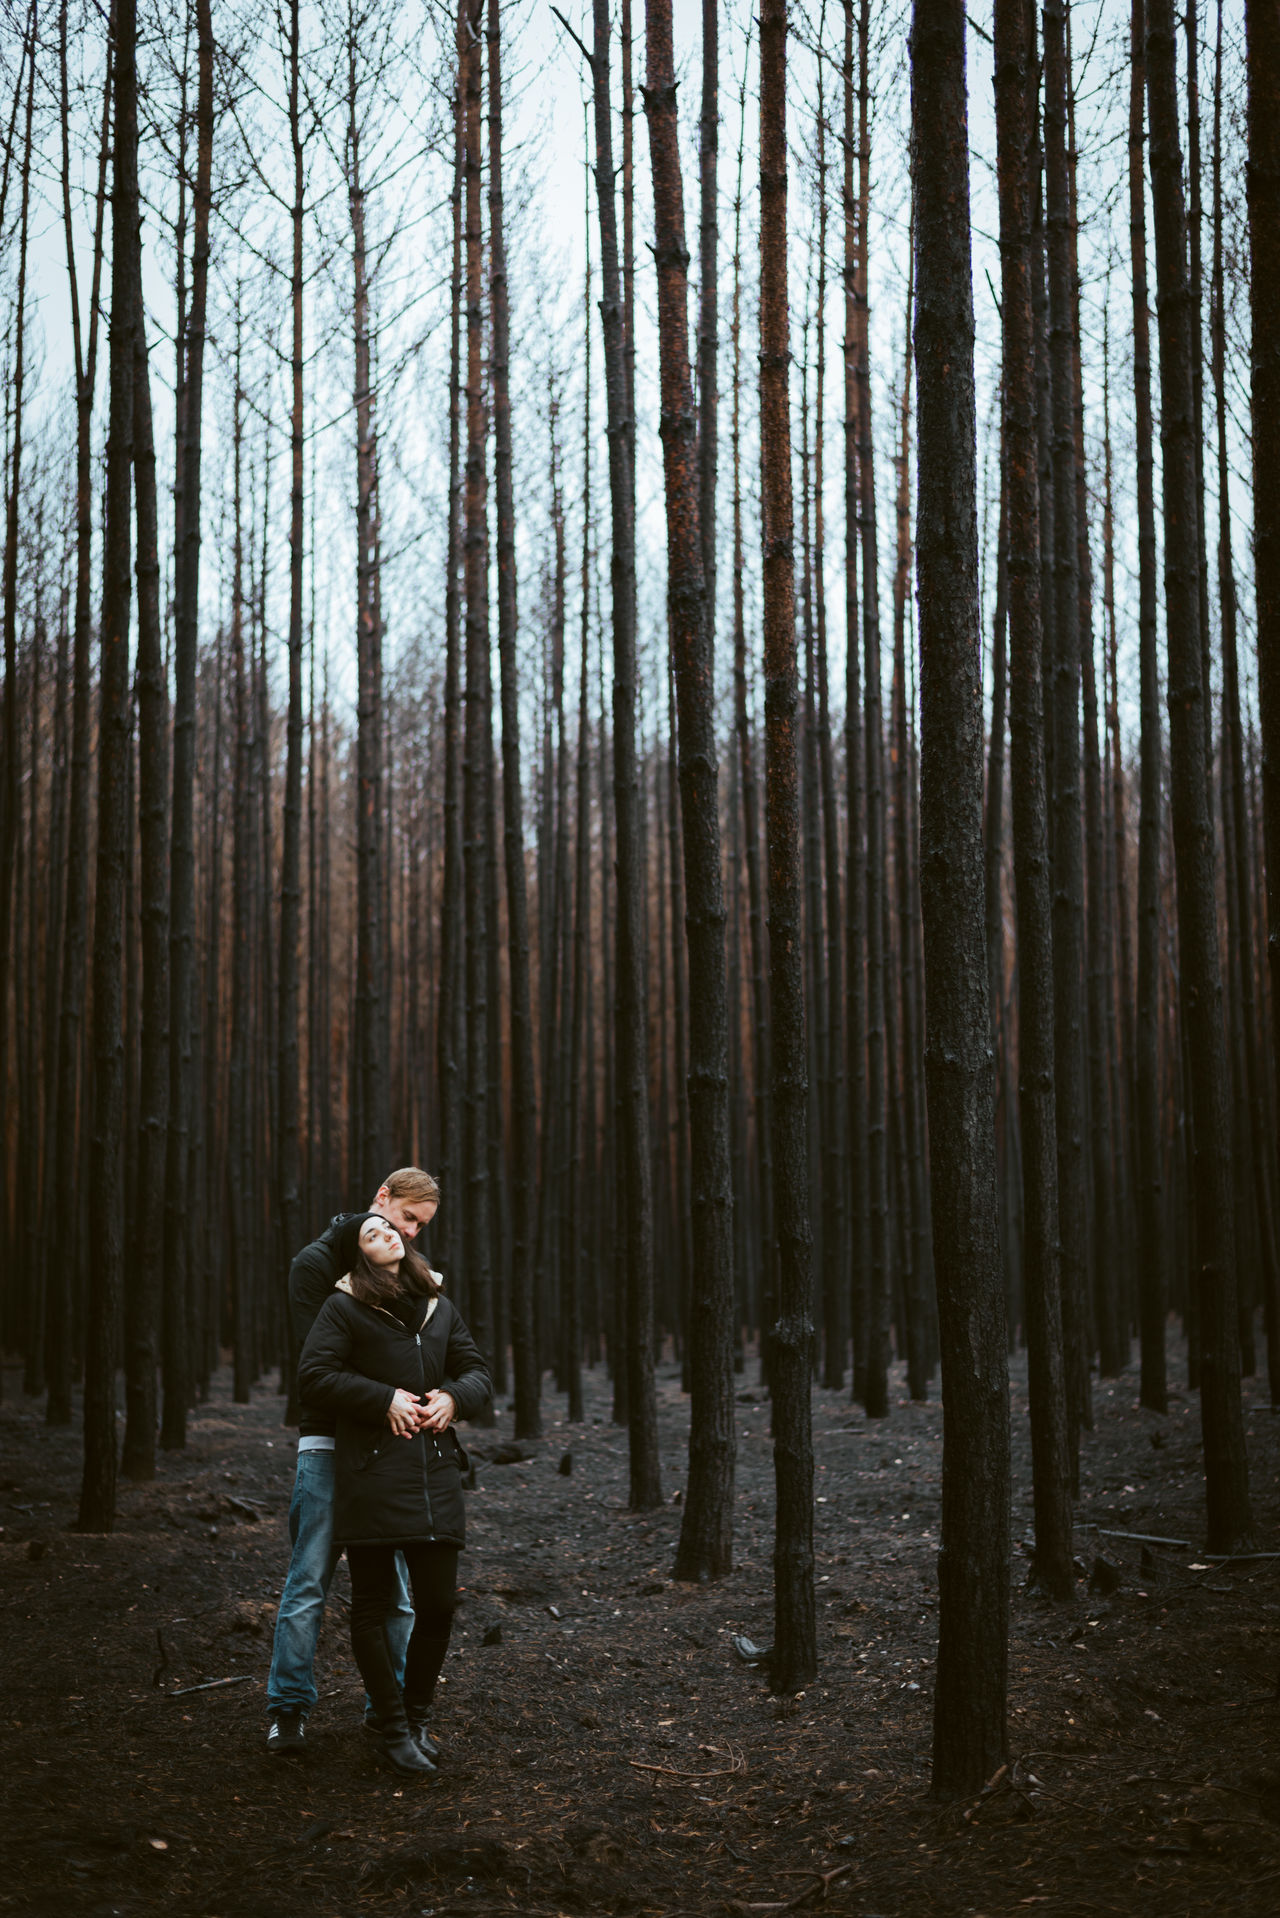 FULL LENGTH OF MAN STANDING BY TREE IN FOREST